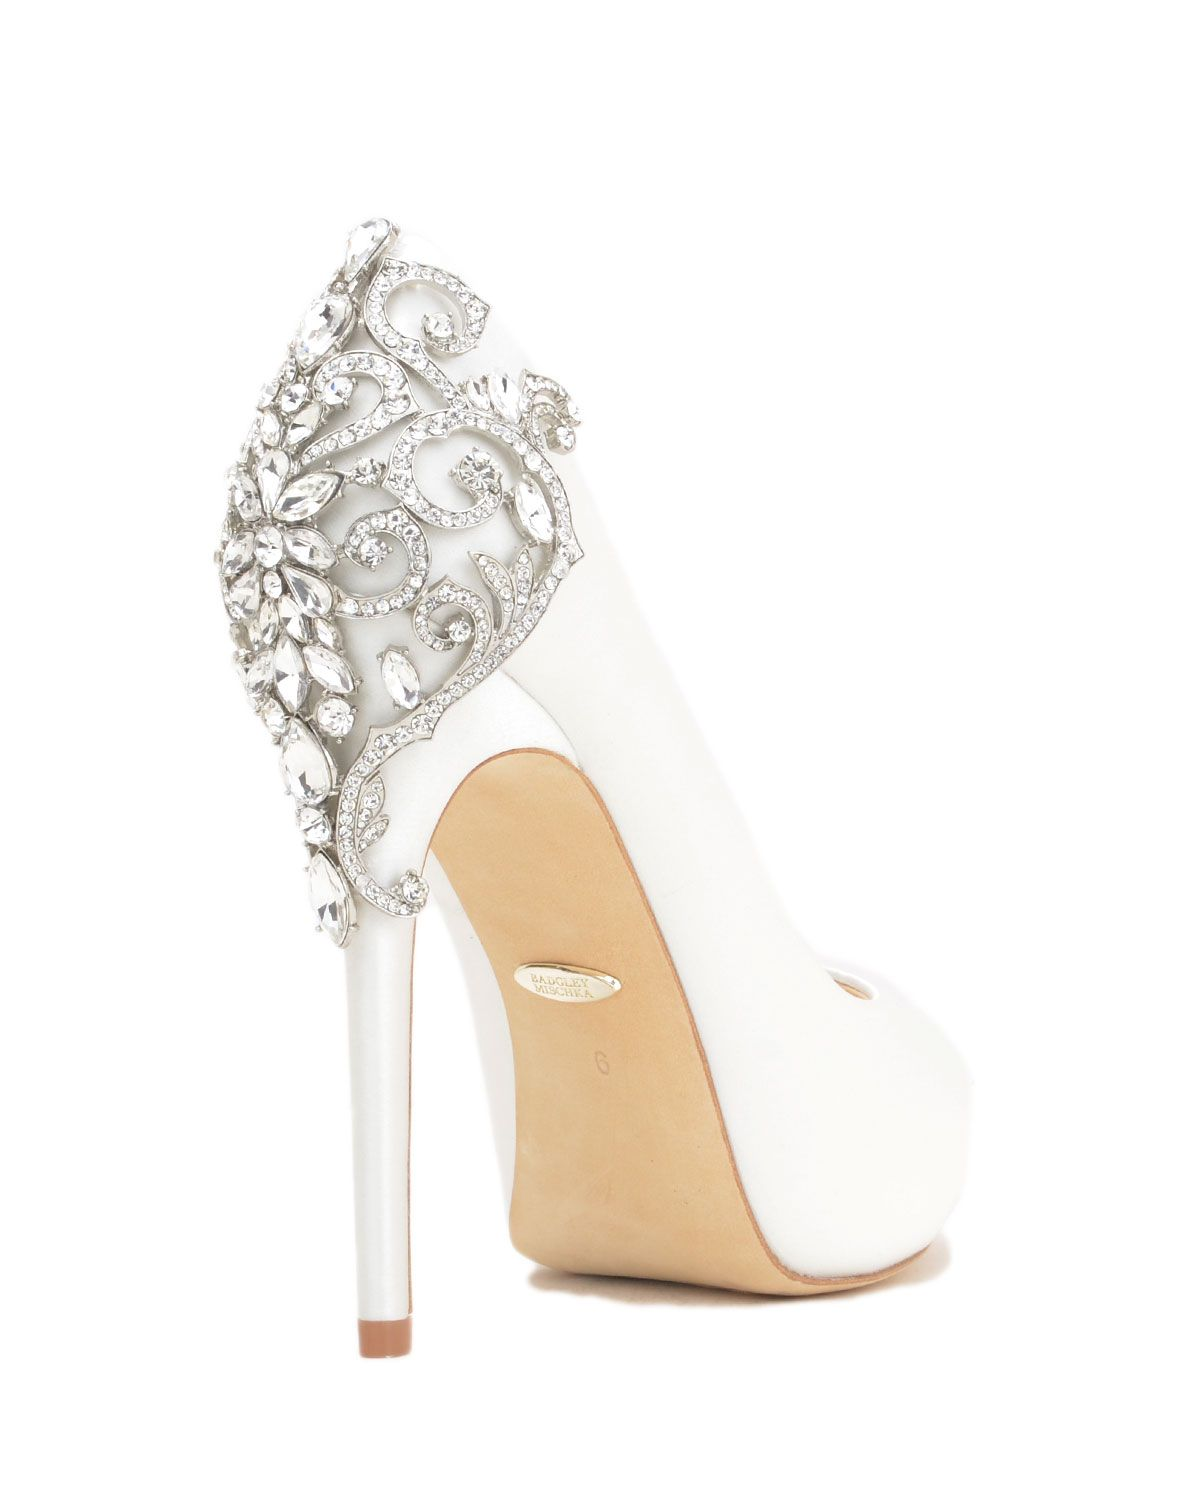 1a055f24f1 Badgley Mischka Karolina Embellished Evening Shoe, now available at the  official website. Free shipping, returns and exchanges.